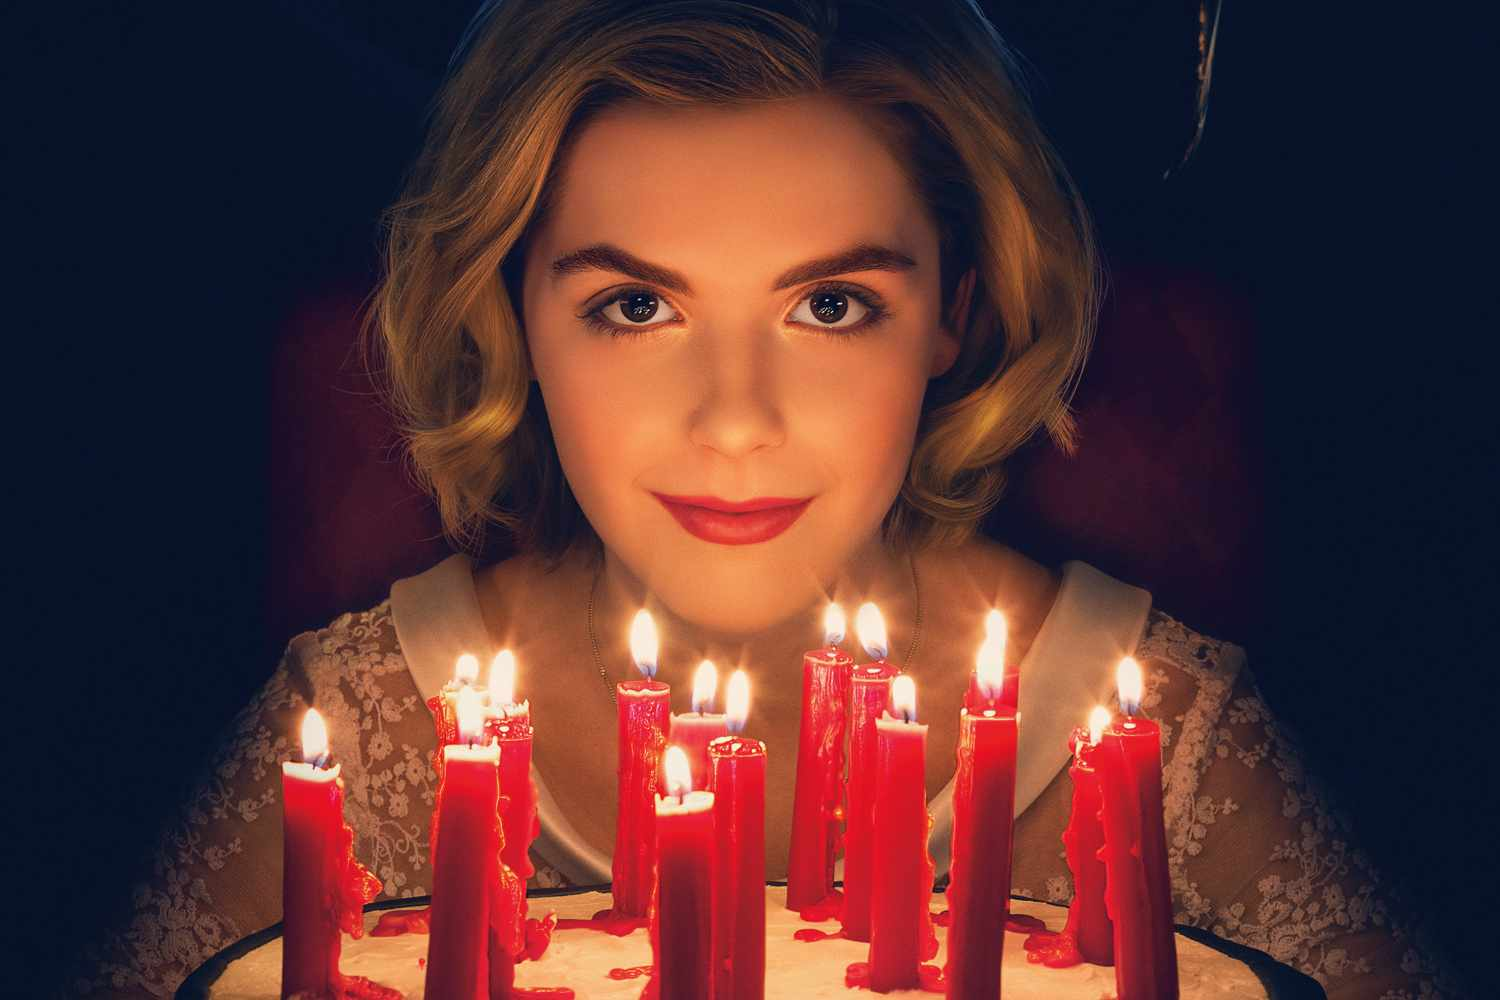 The poster for Chilling Adventures of Sabrina (Netflix)